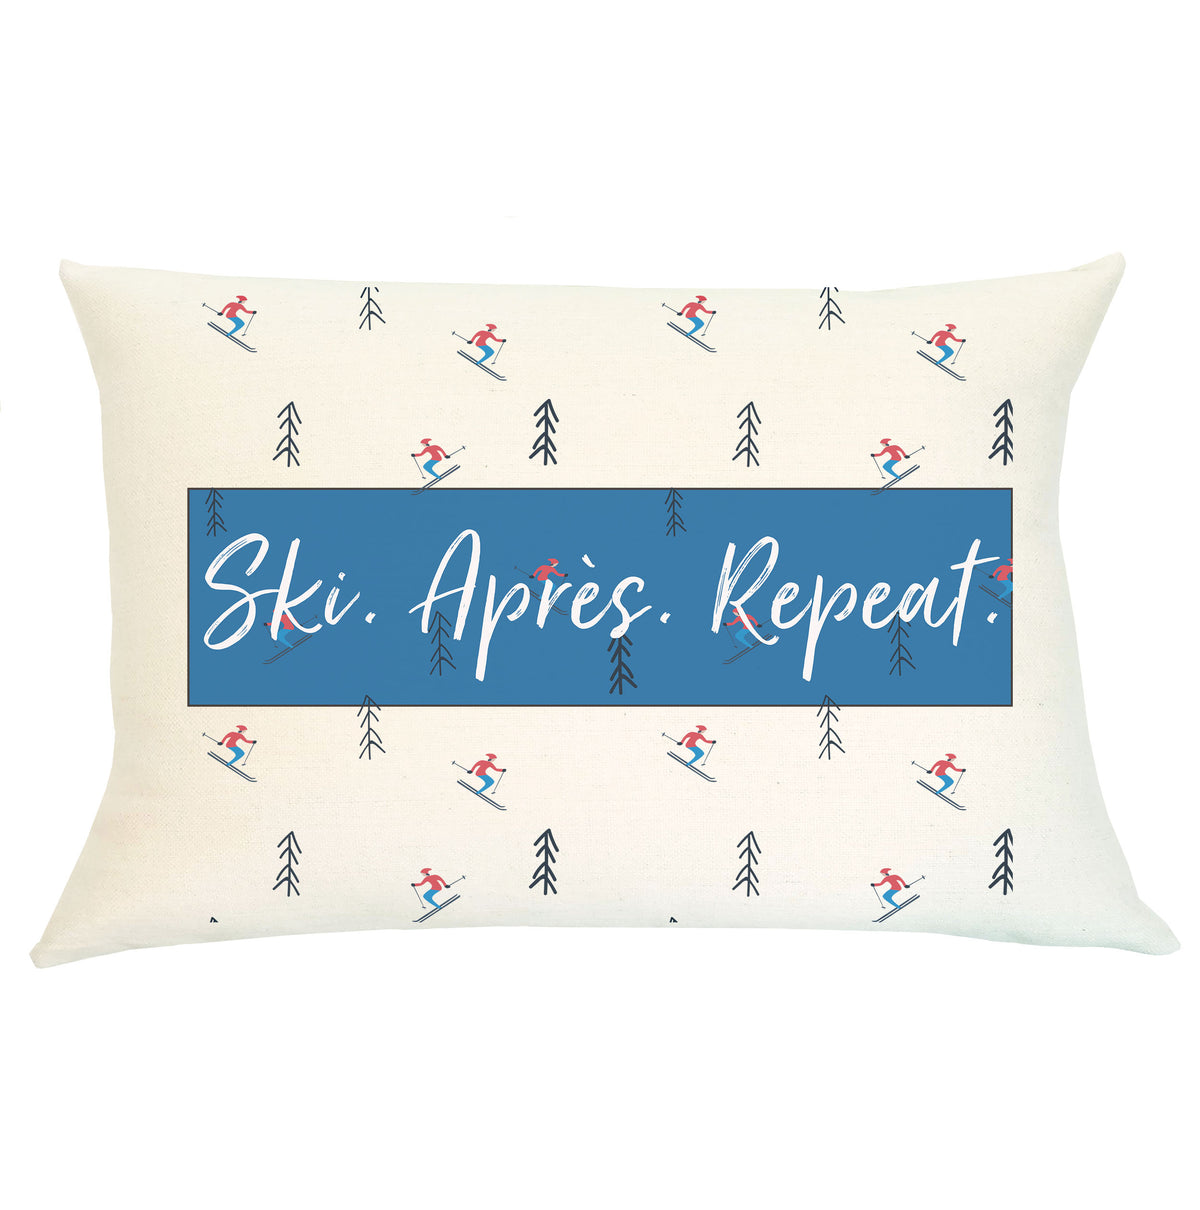 Pillow Lumbar - Ski Apres Repeat - Insert Included